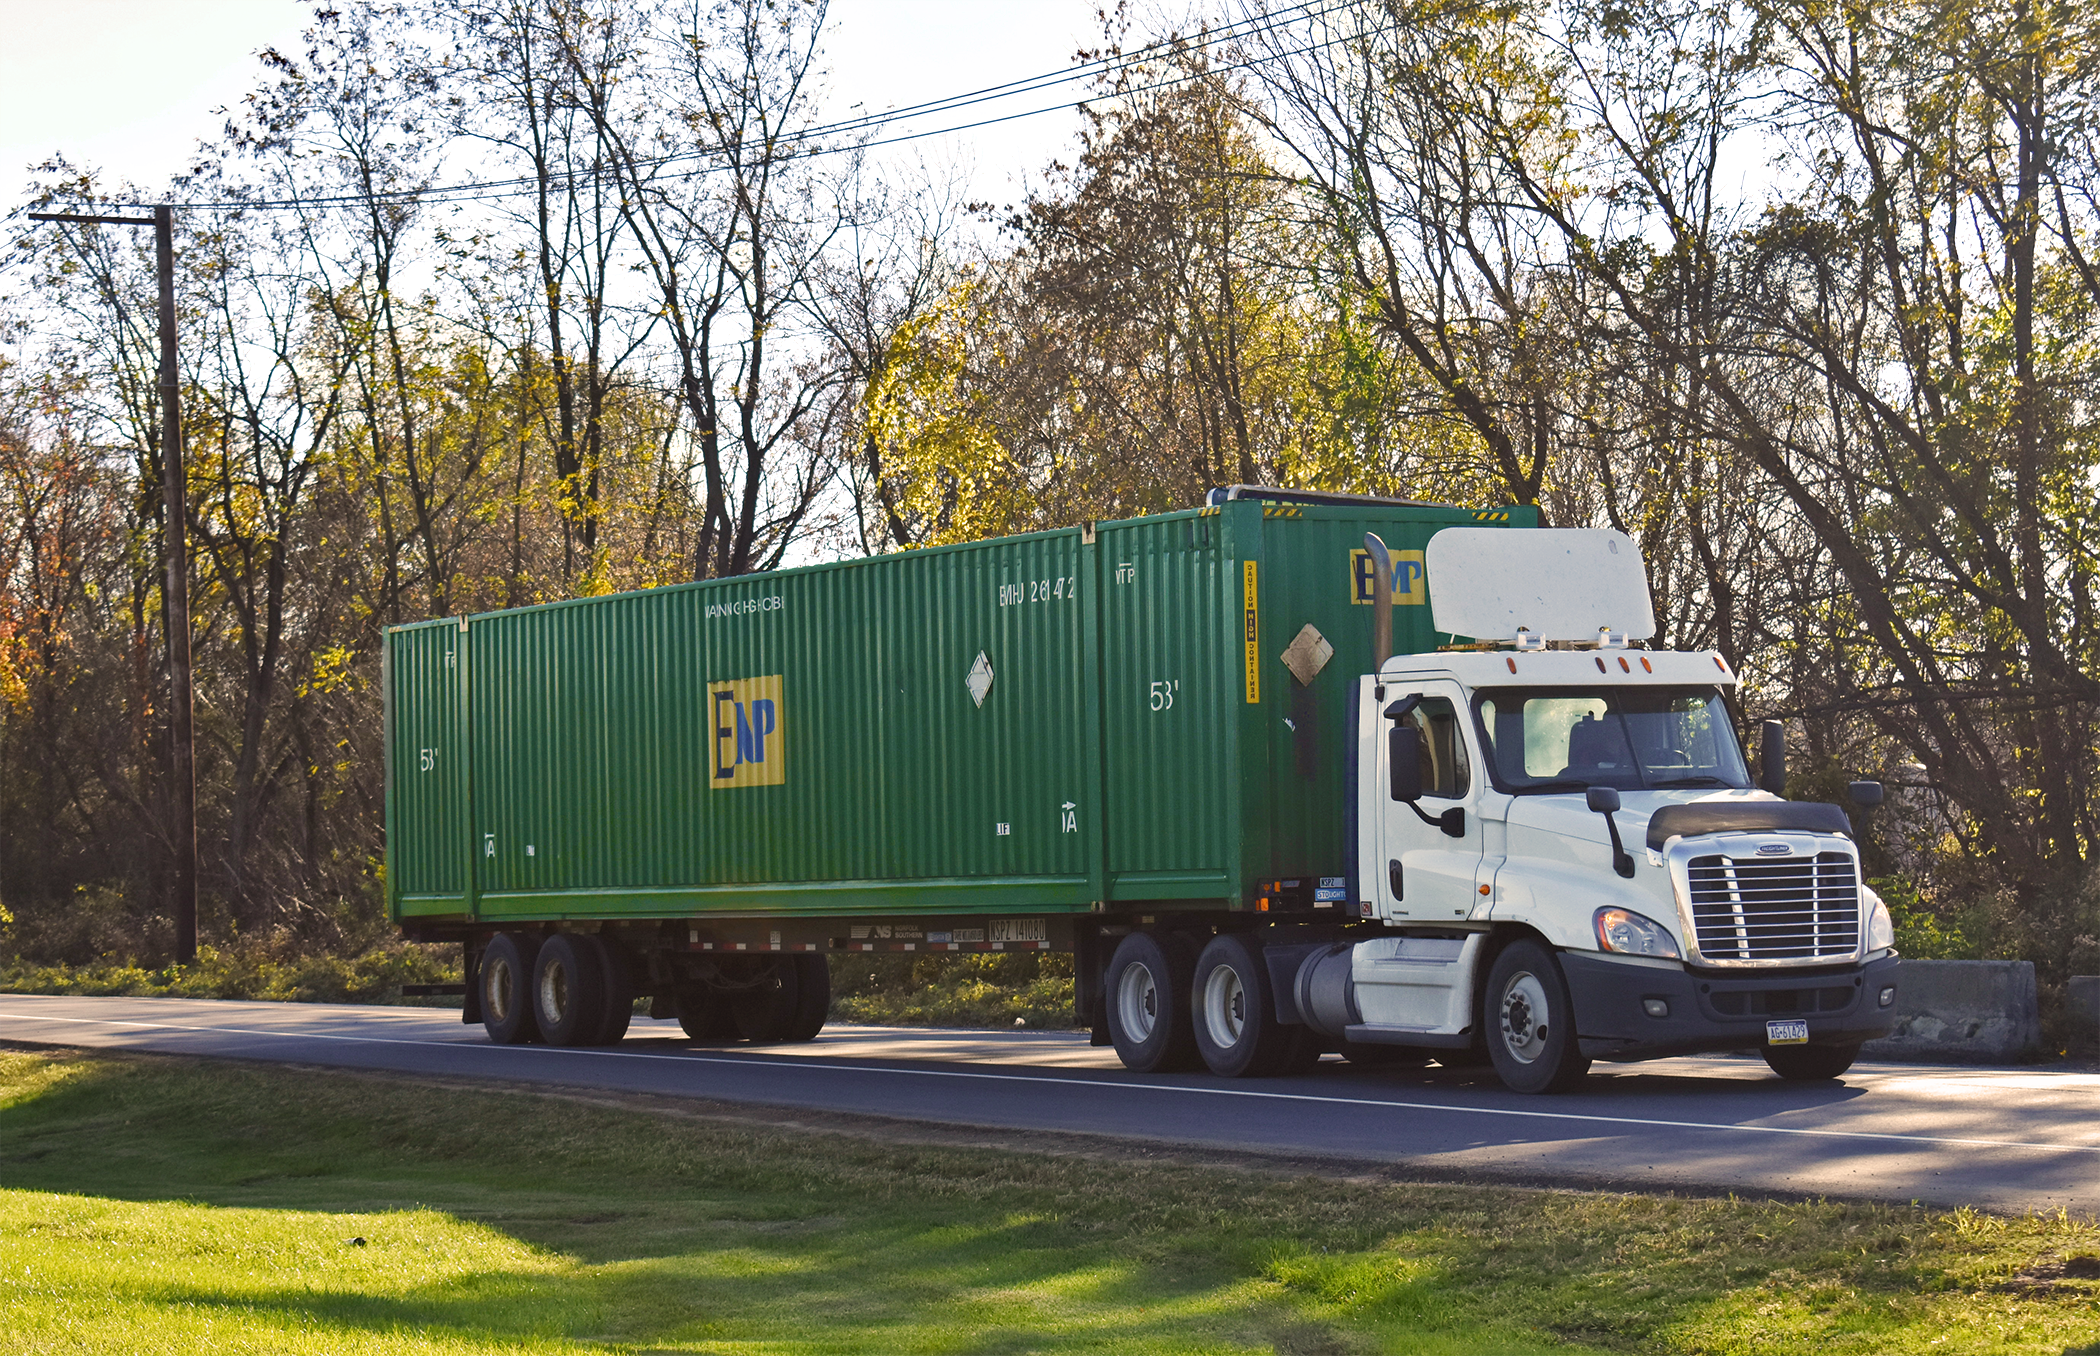 Drayage:Transporting or moving goods over short distances. - Yep, this puts the 'Dray' in DrayNow!